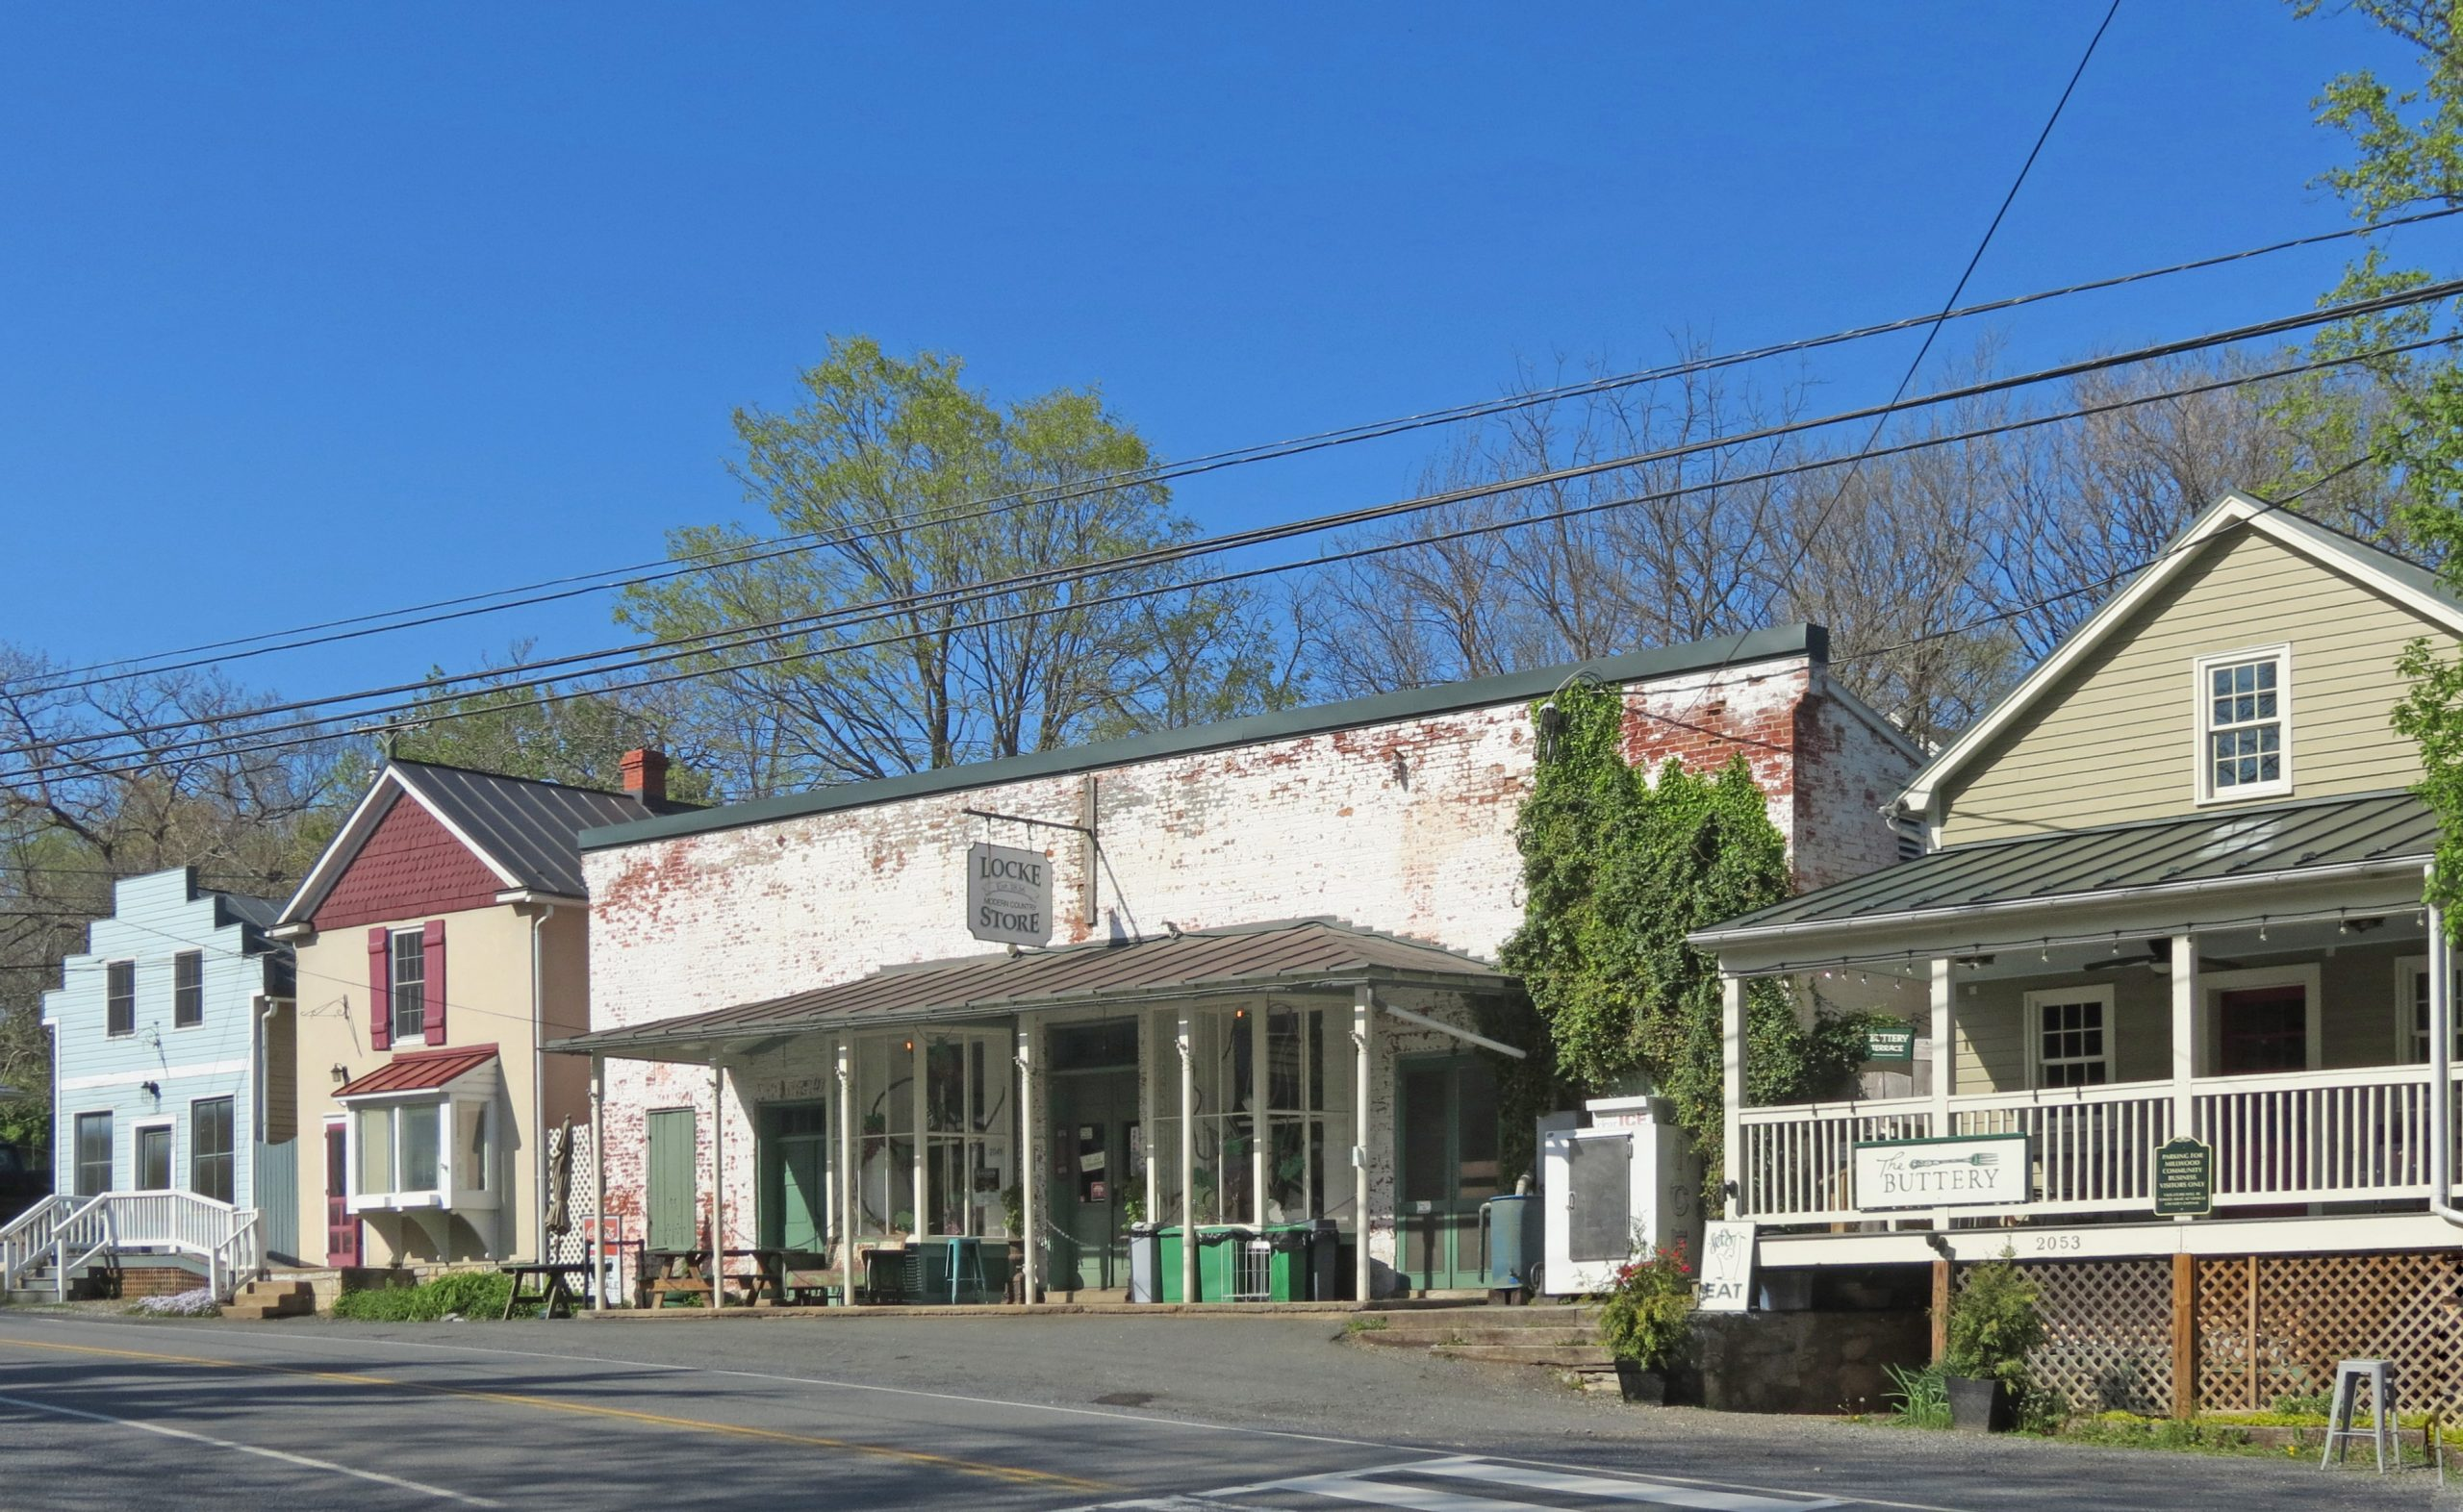 Millwood Commercial Historic District